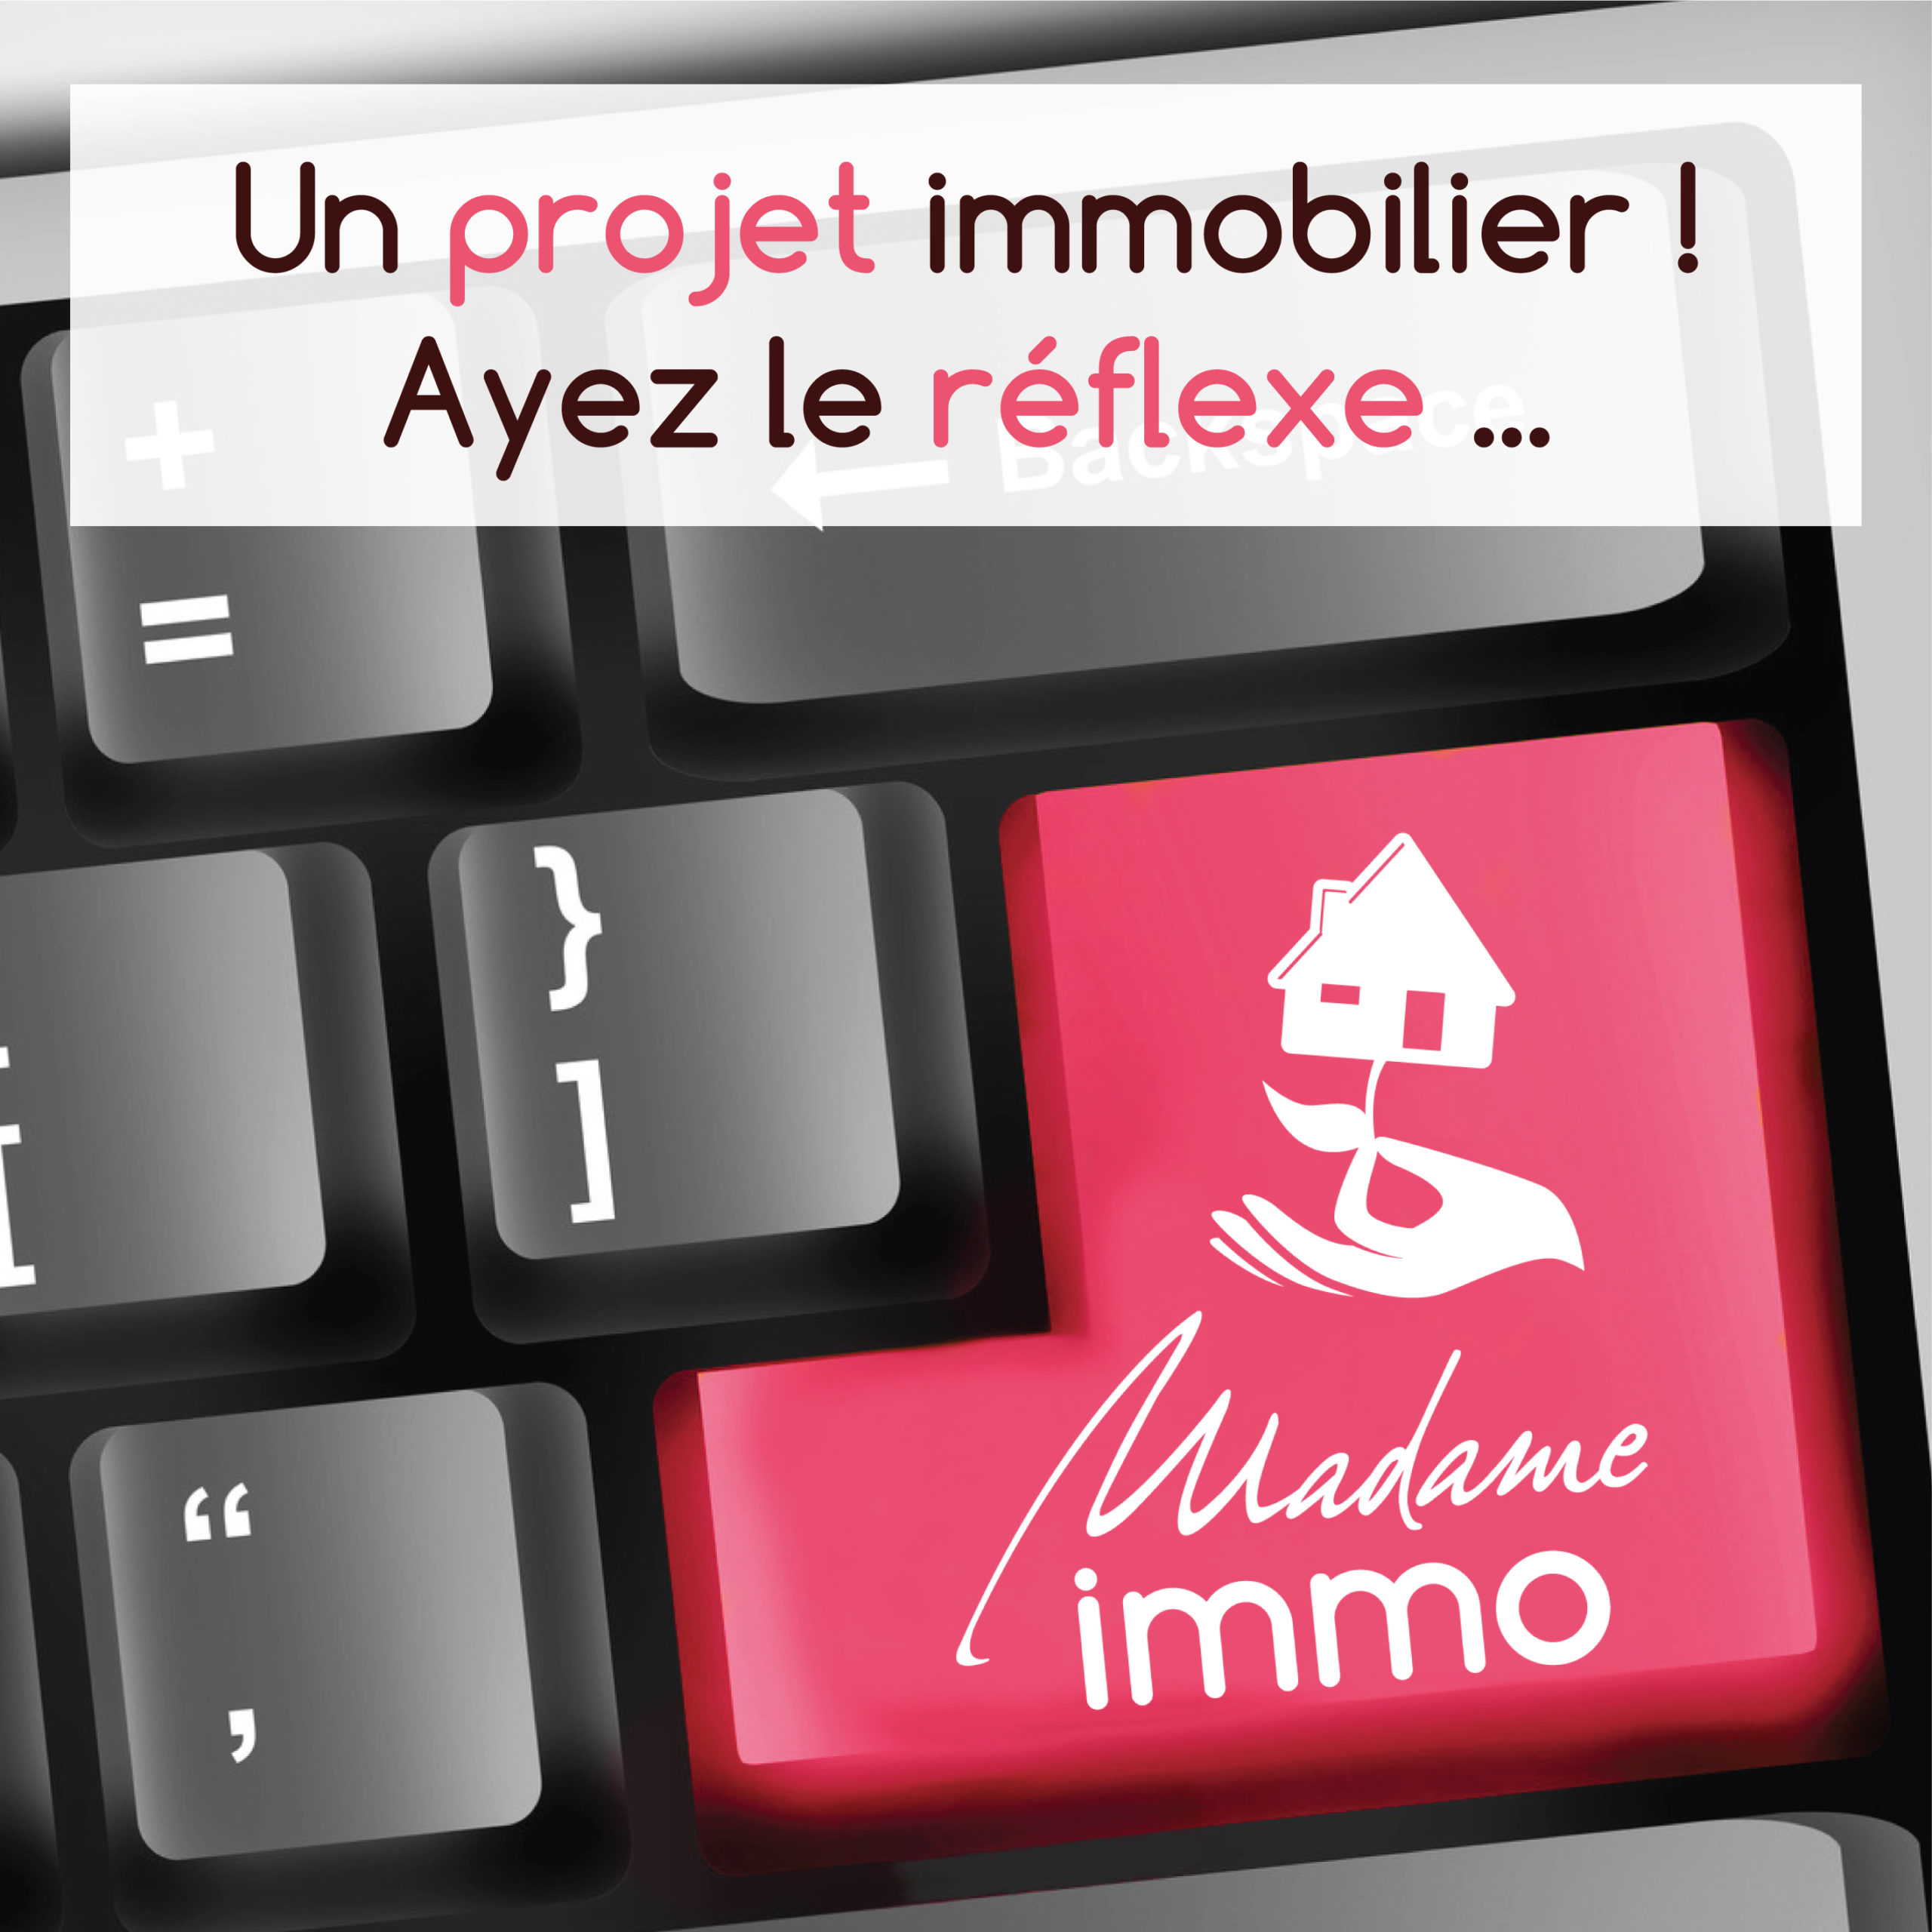 1-MADAME-Immobilier-projet-immobilier-scaled.jpg